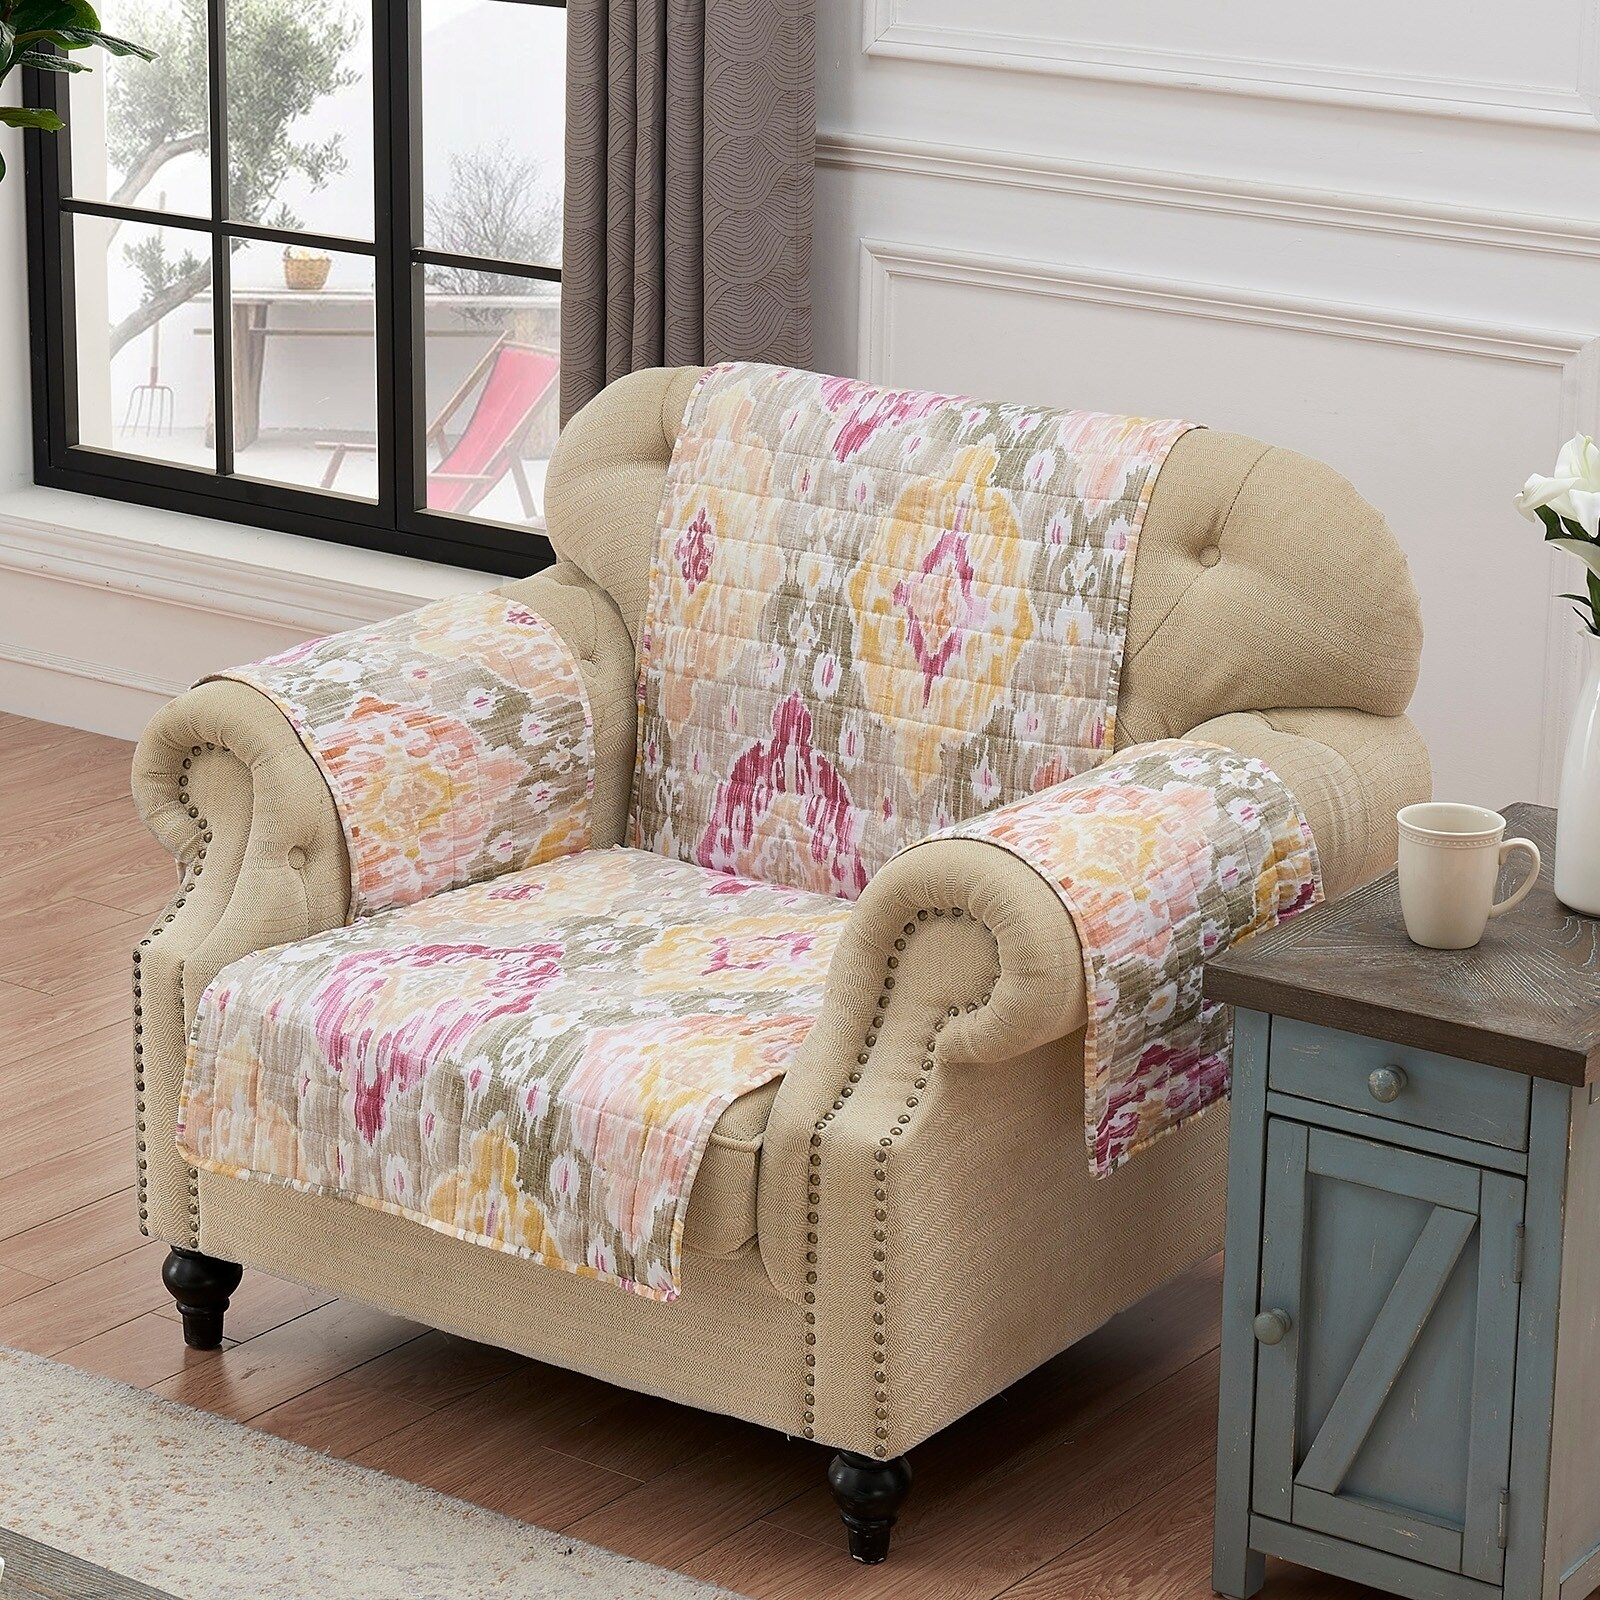 Sofa Arm Covers Dublin Moroccan Slipcovers Furniture Covers Find Great Home Decor